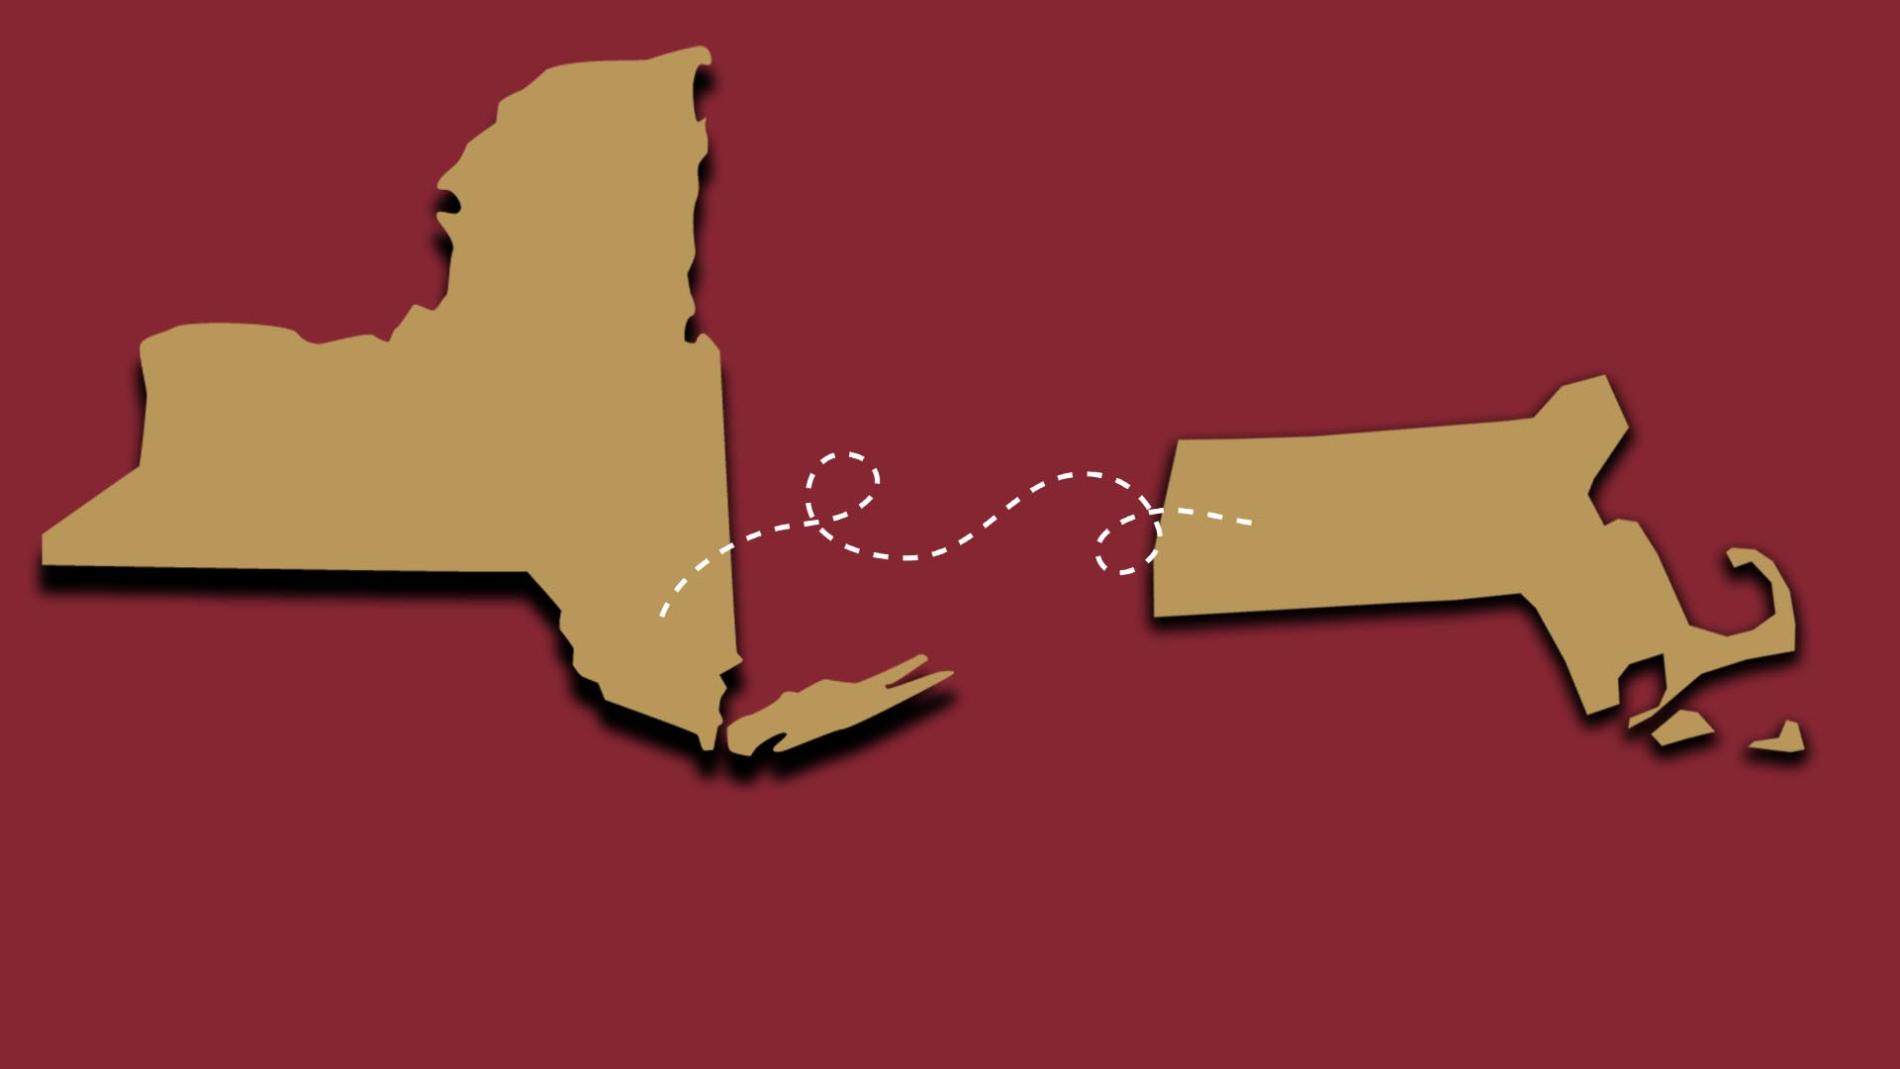 Outlines of the state of NY and MA